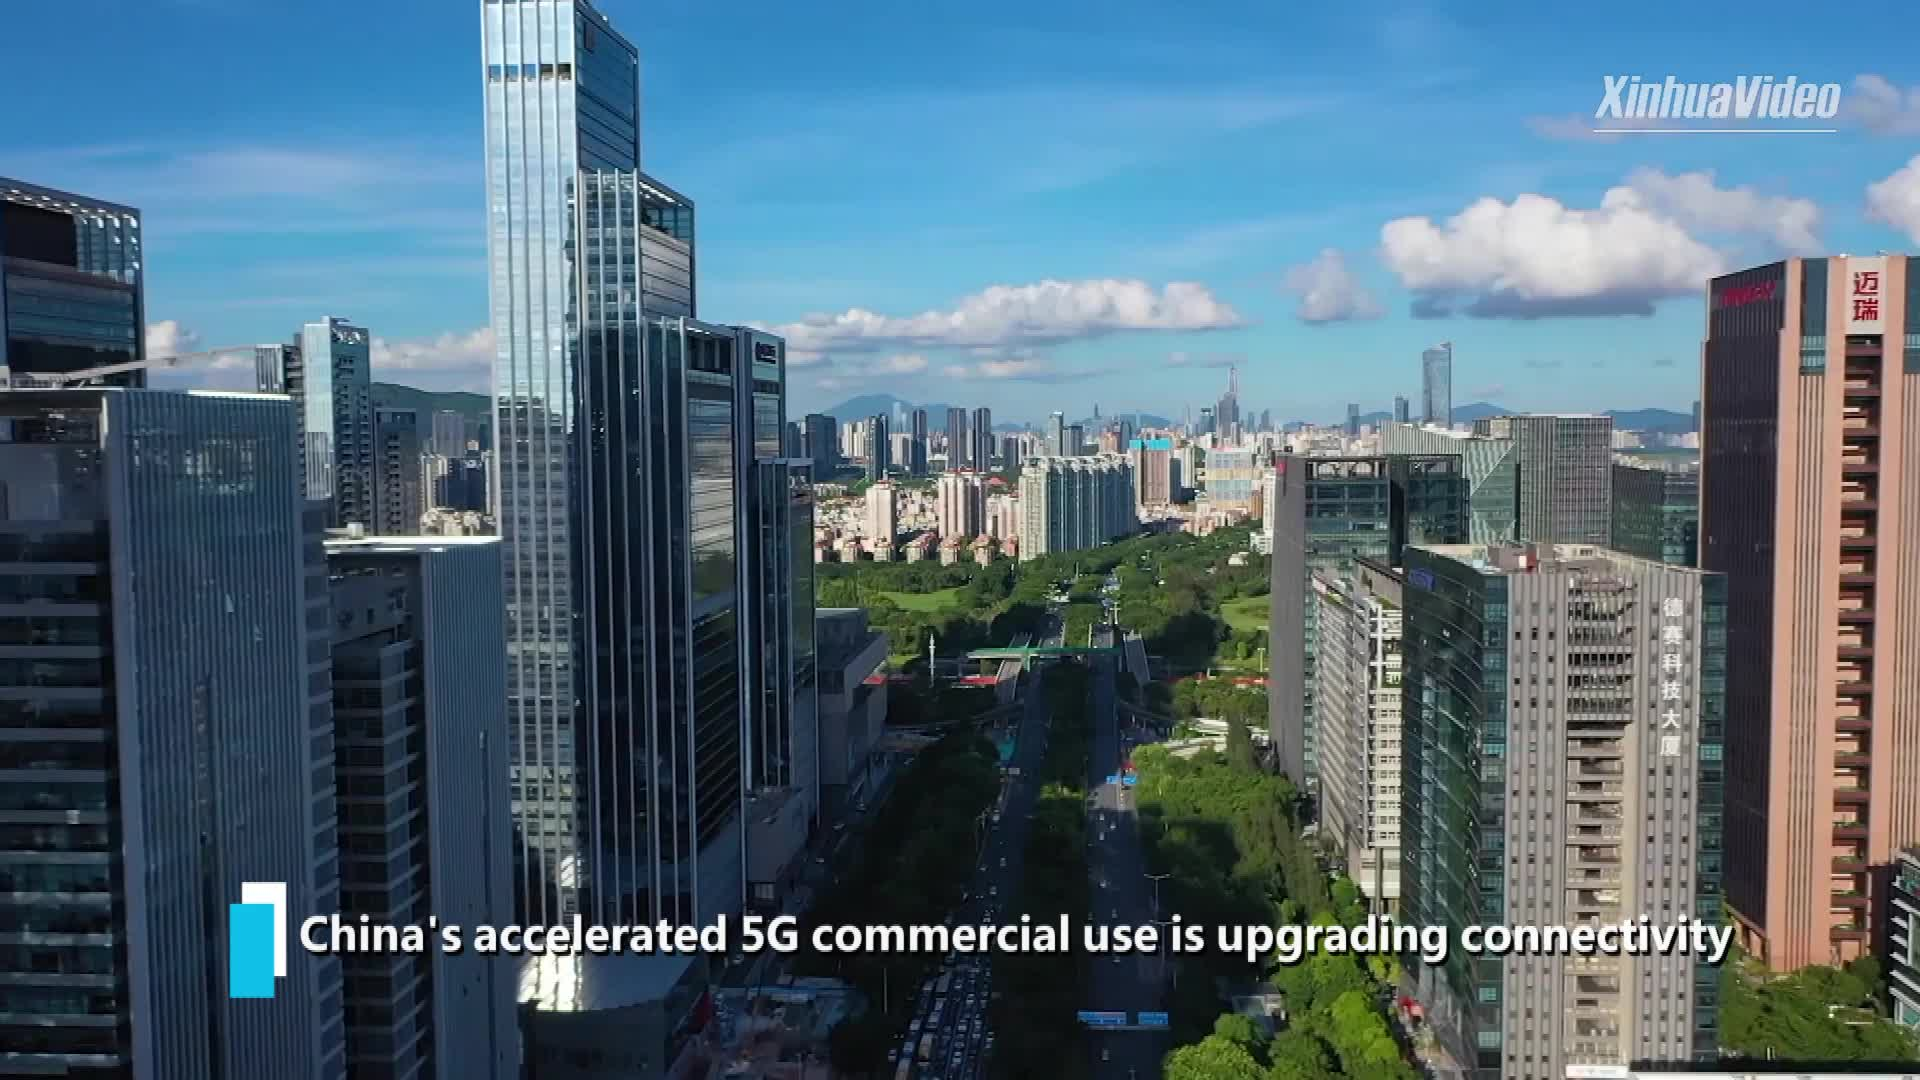 China's accelerated 5G commercial use upgrades connectivity